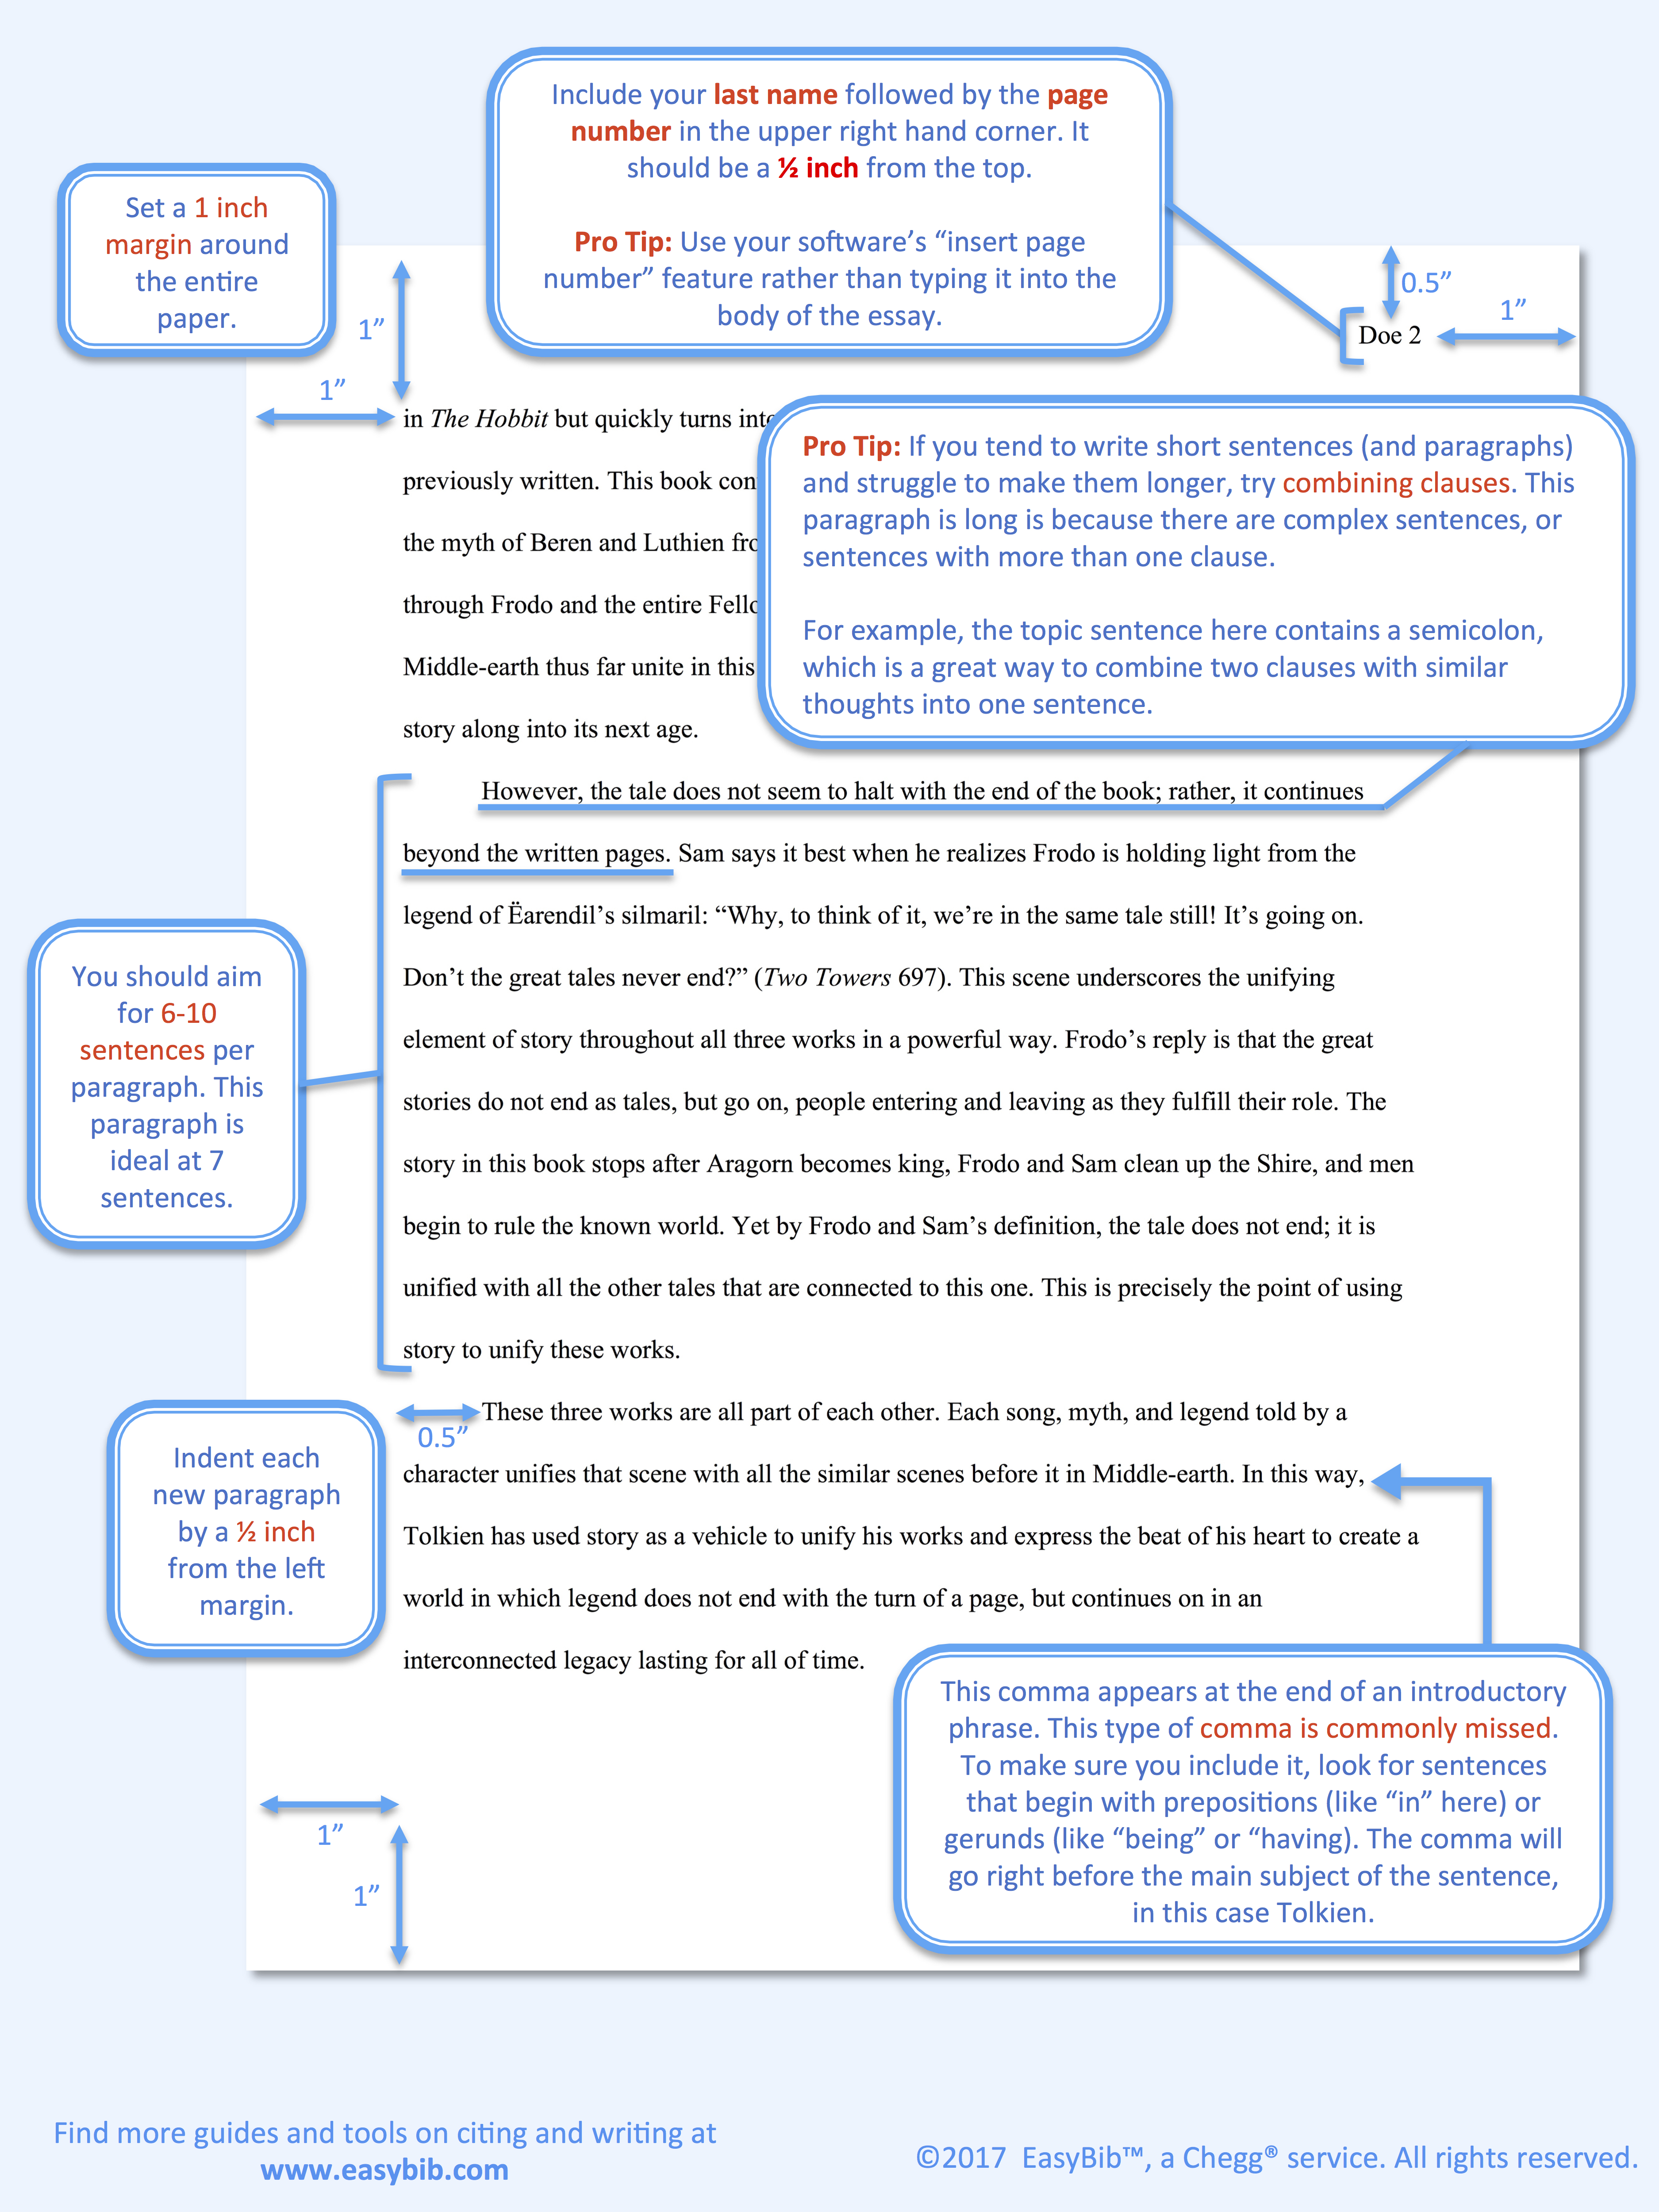 014 Research Paper Model Mla Citing Internet Excellent Sources